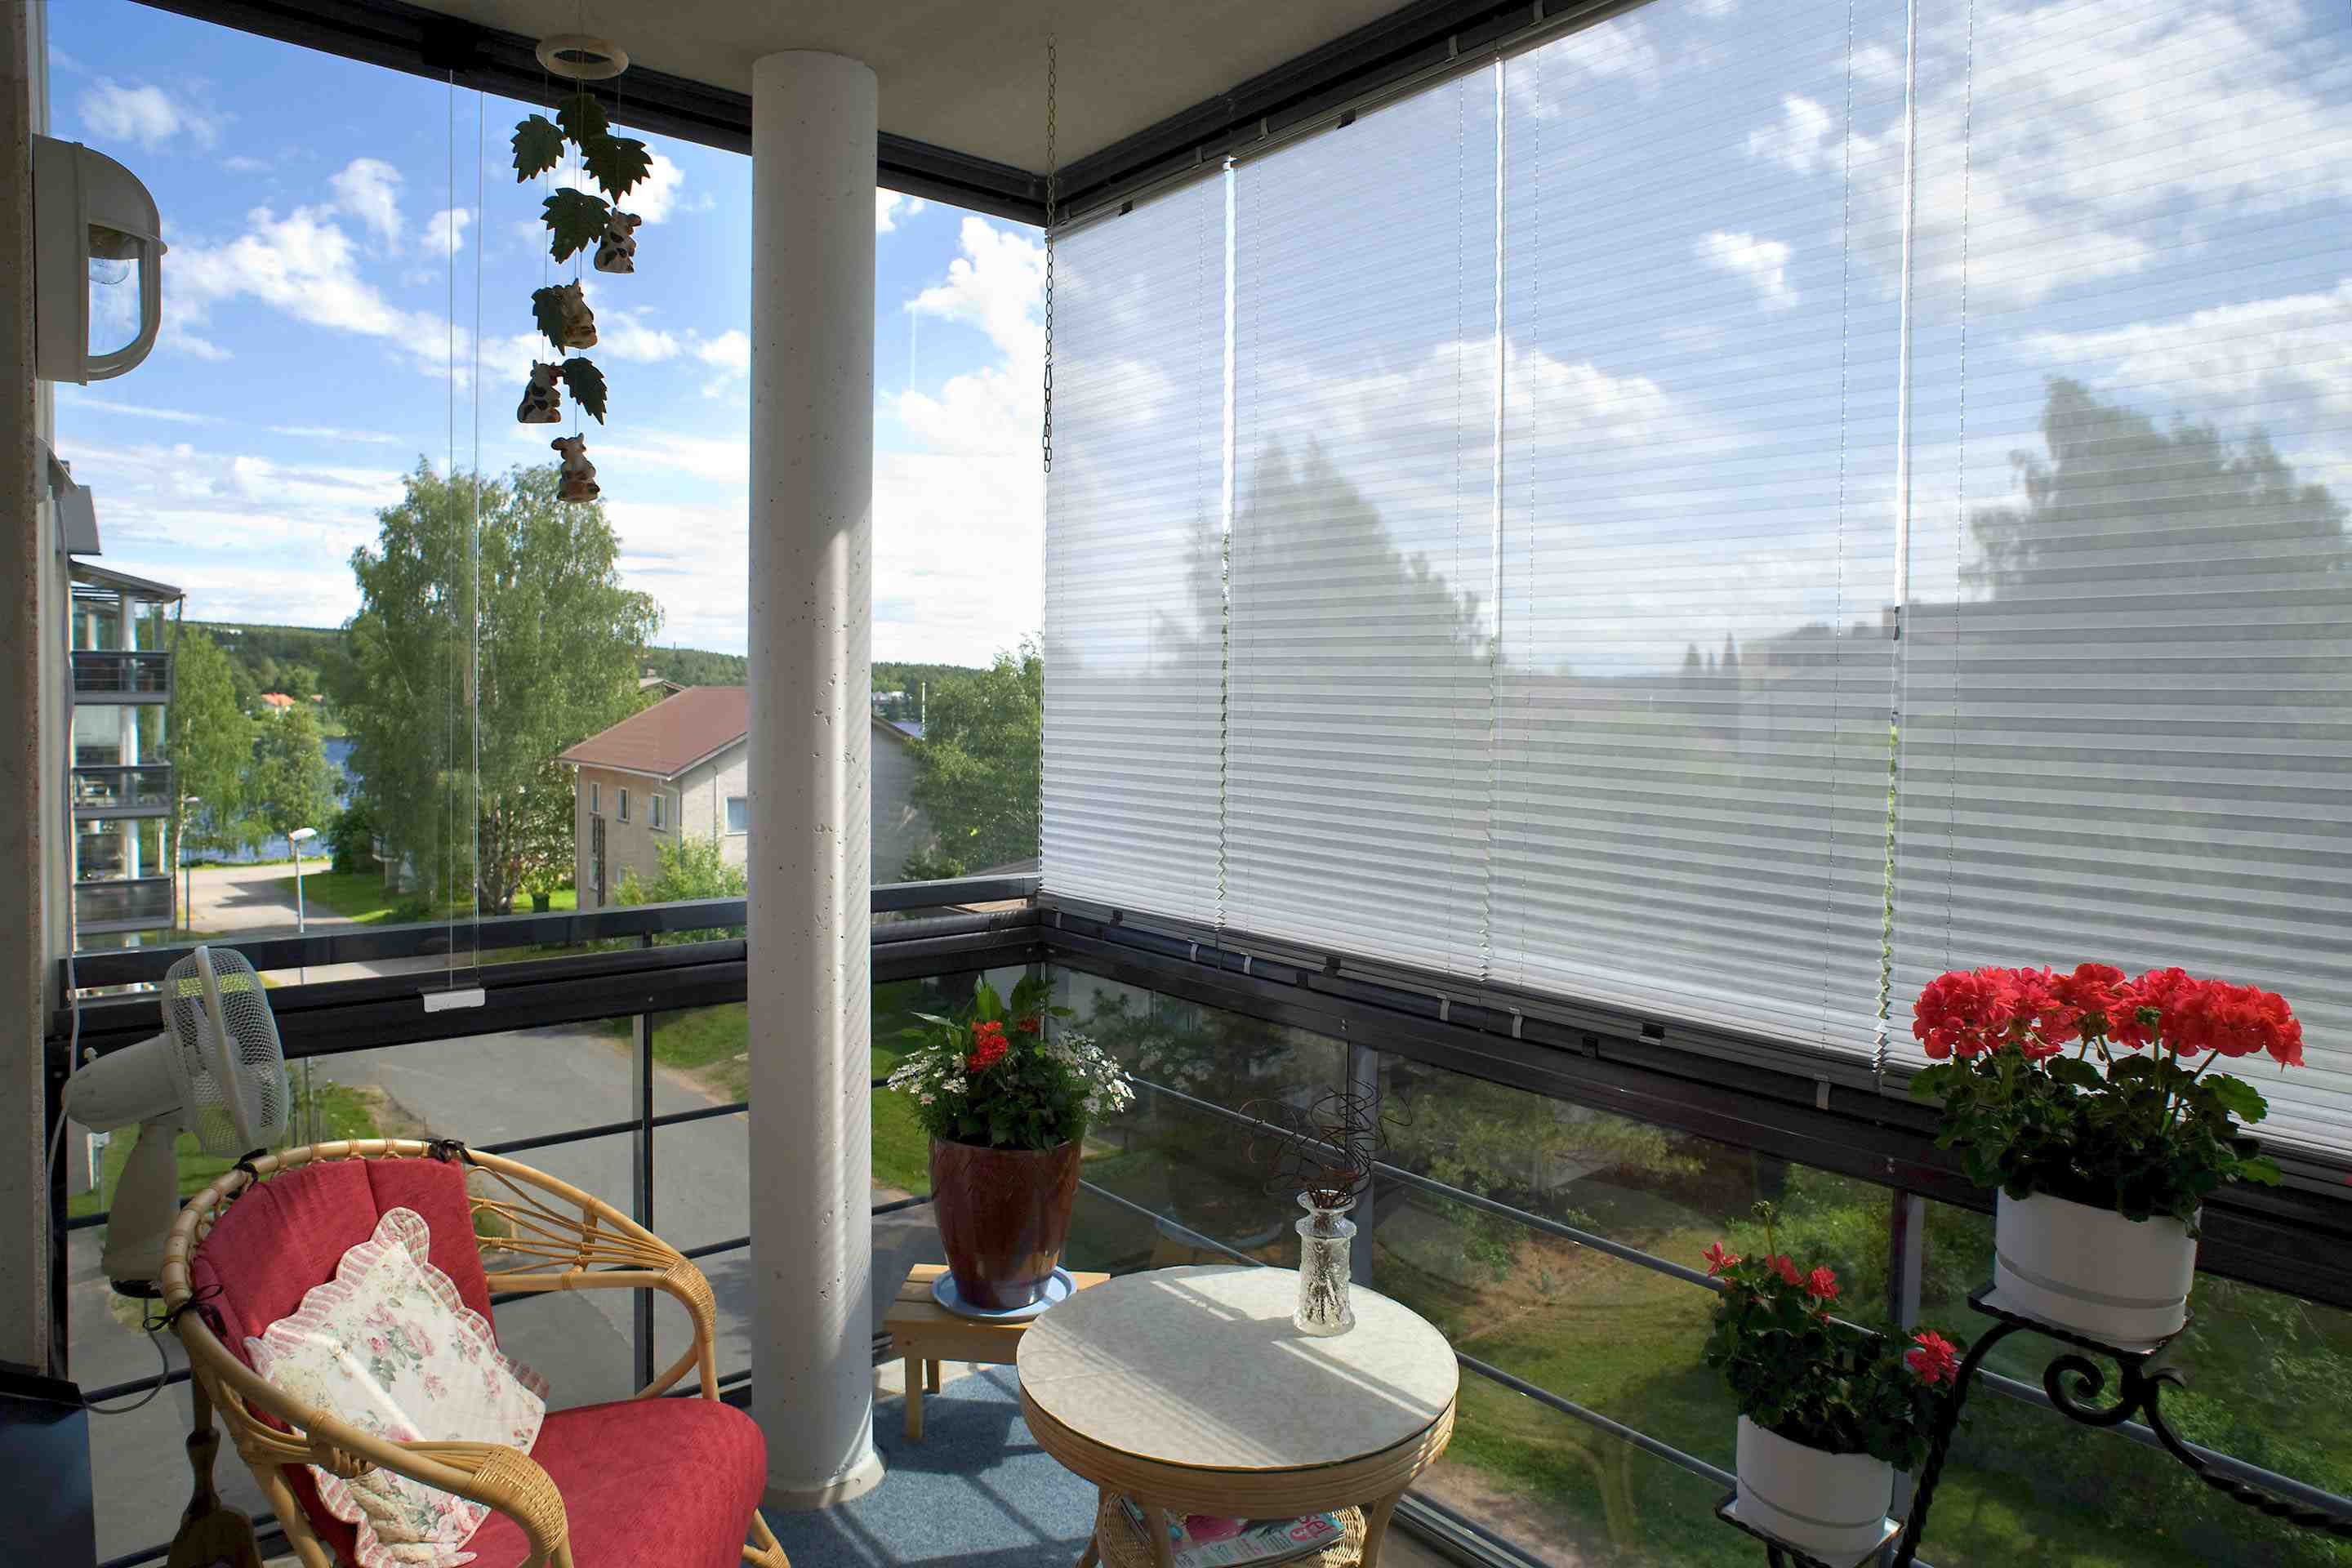 sunroom blinds, balcony blinds, window blinds